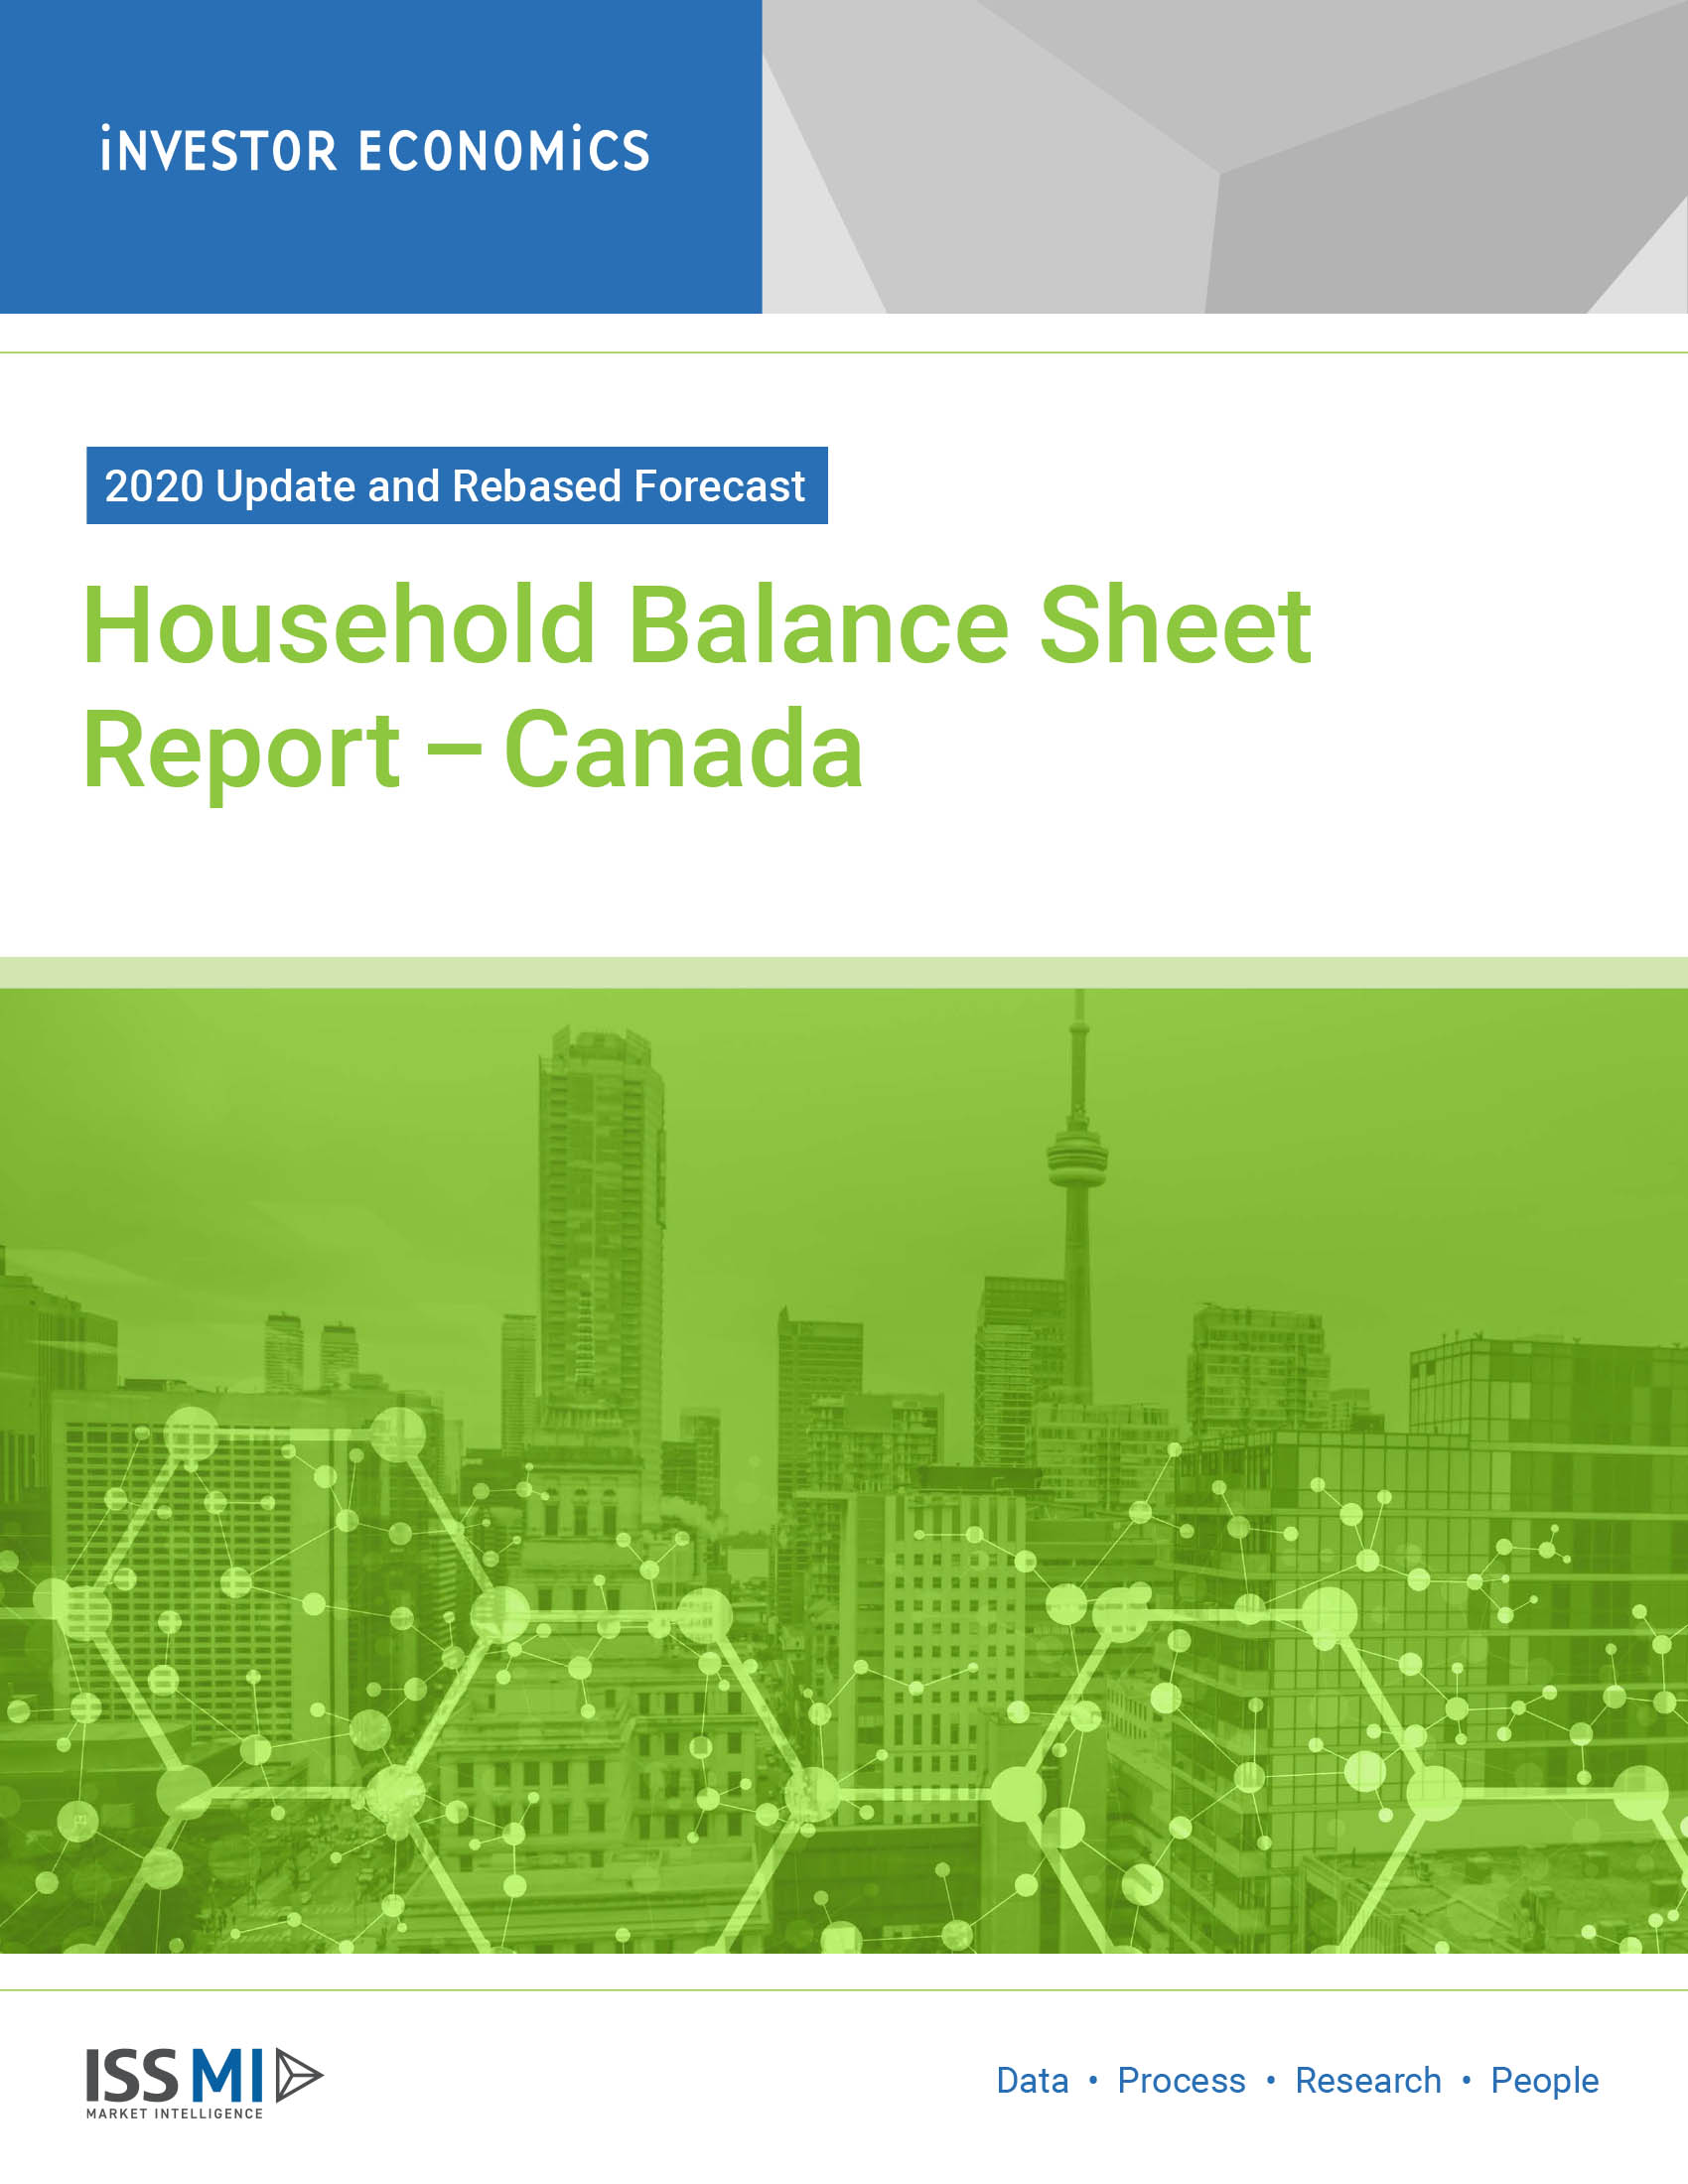 The Household Balance Sheet 2020 Update and Rebased Forecast